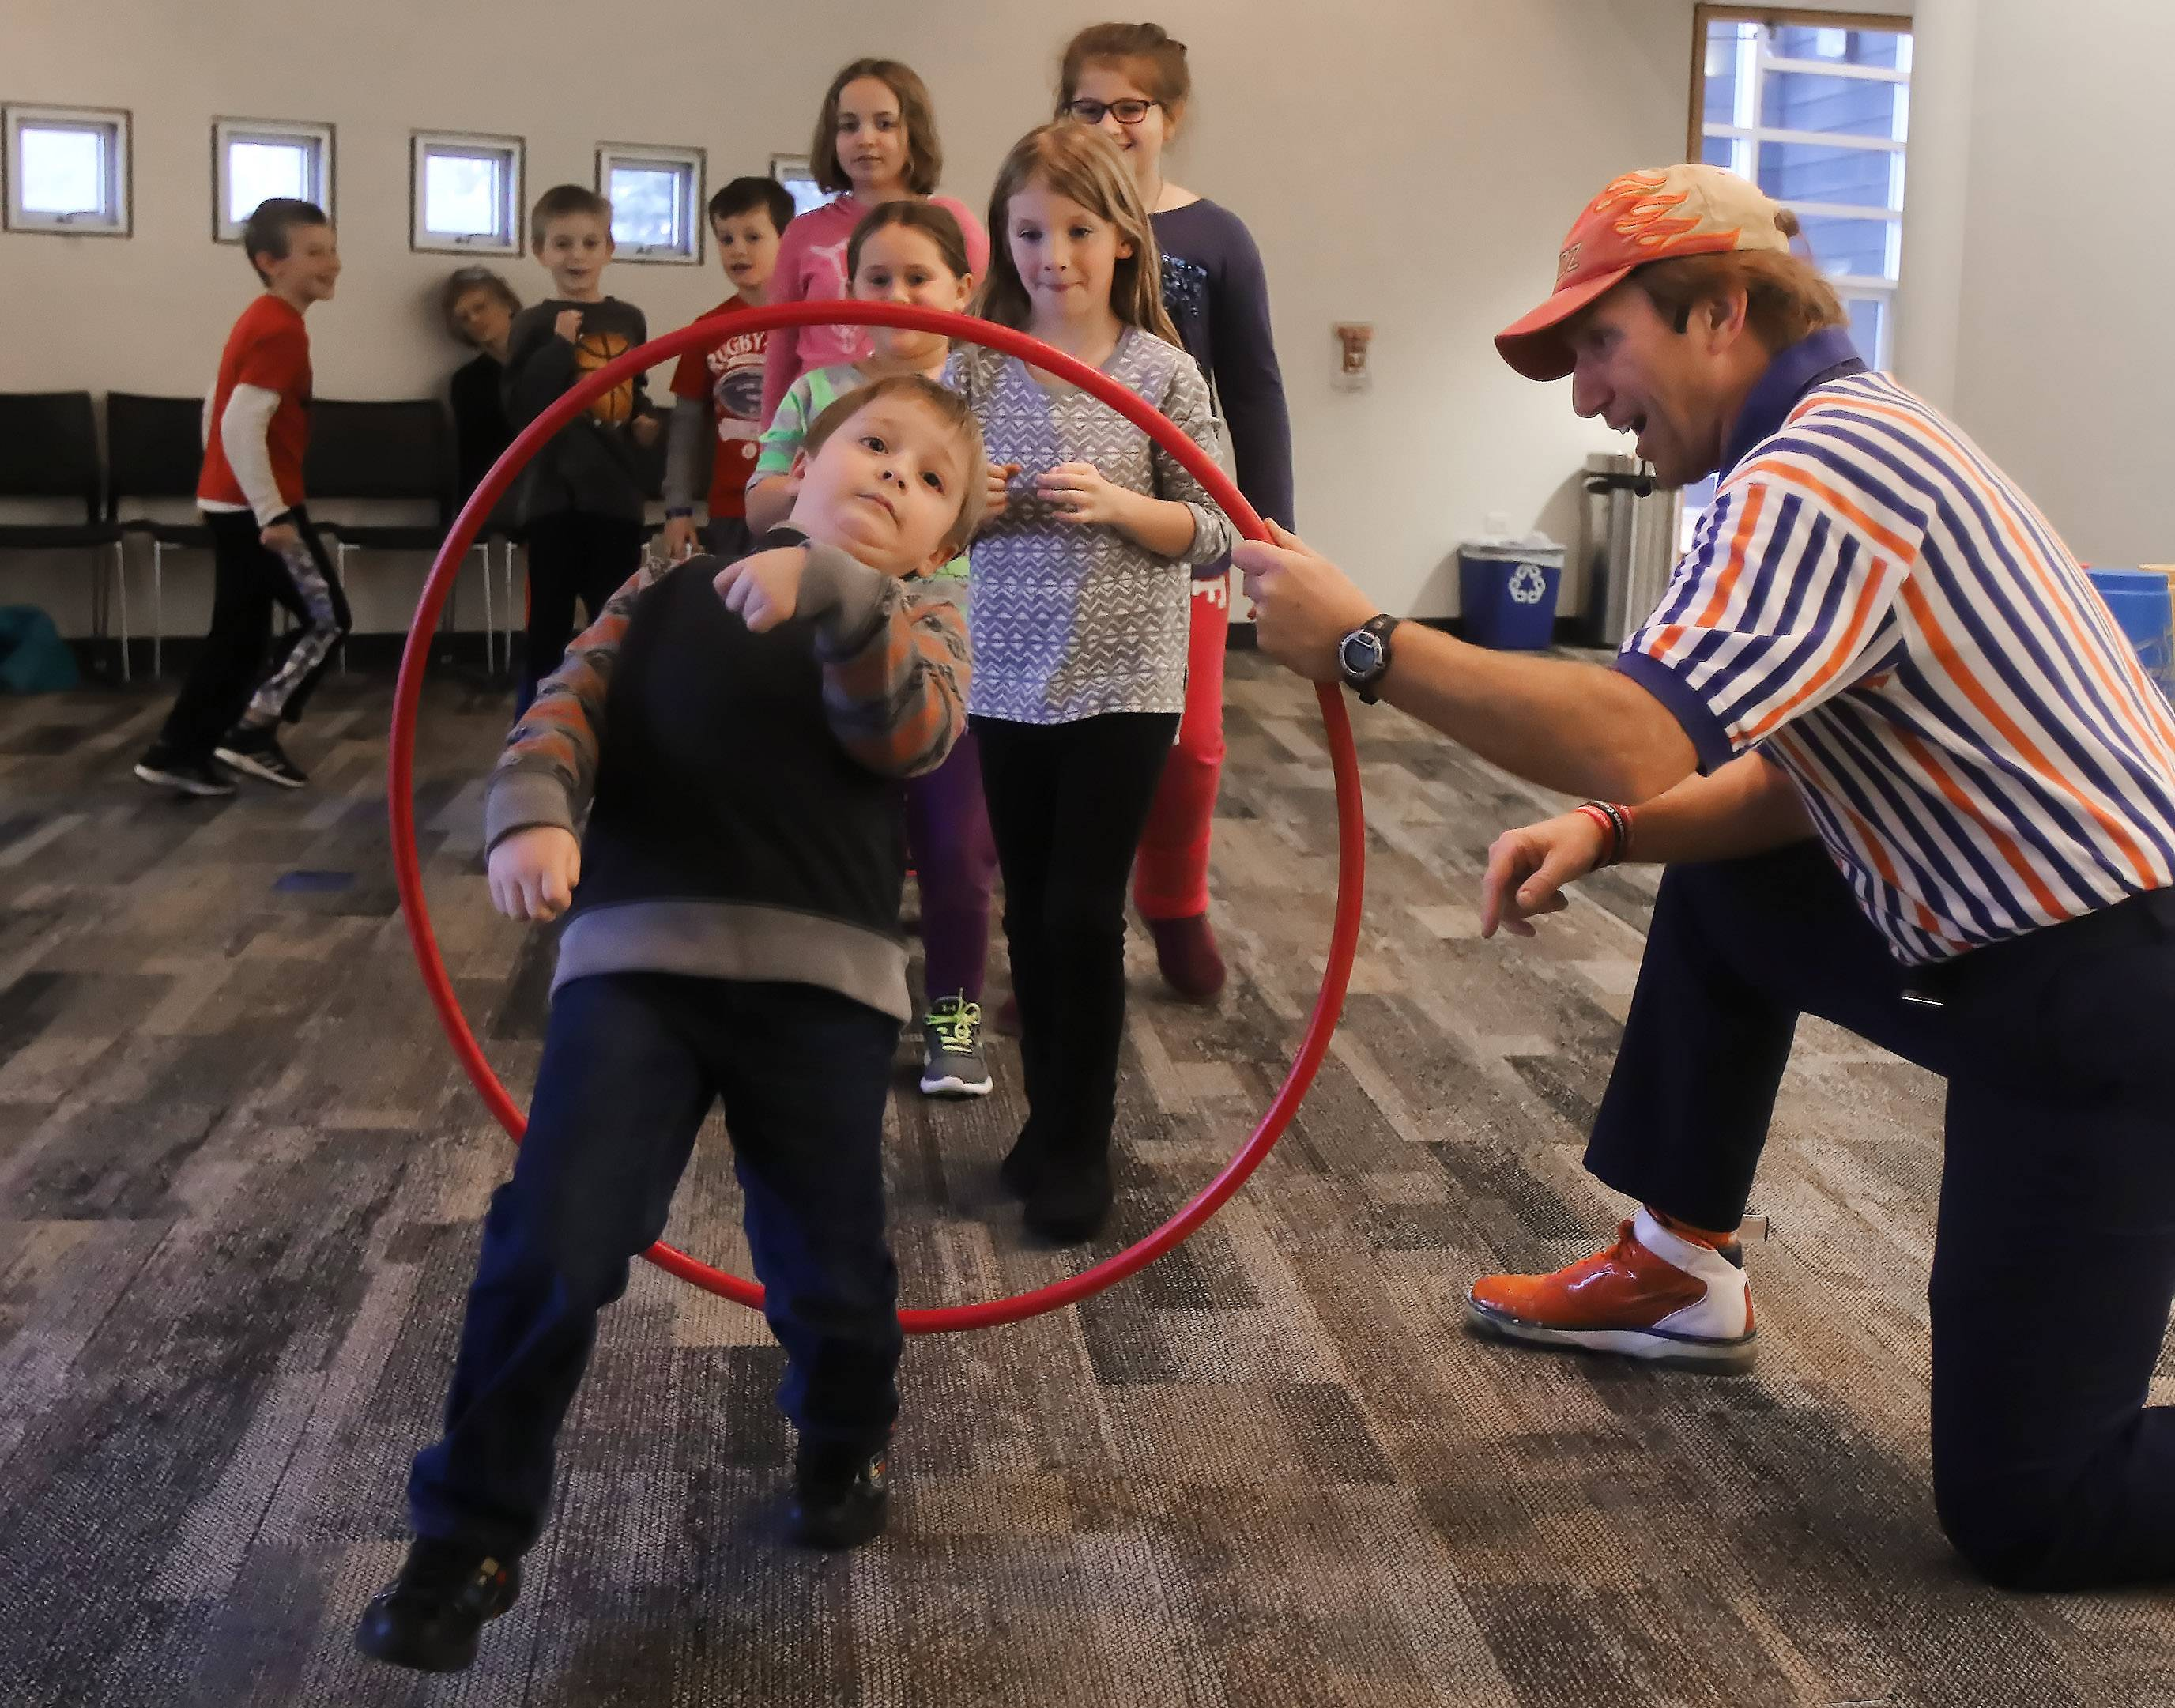 Families compete in wacky game show at Wauconda library